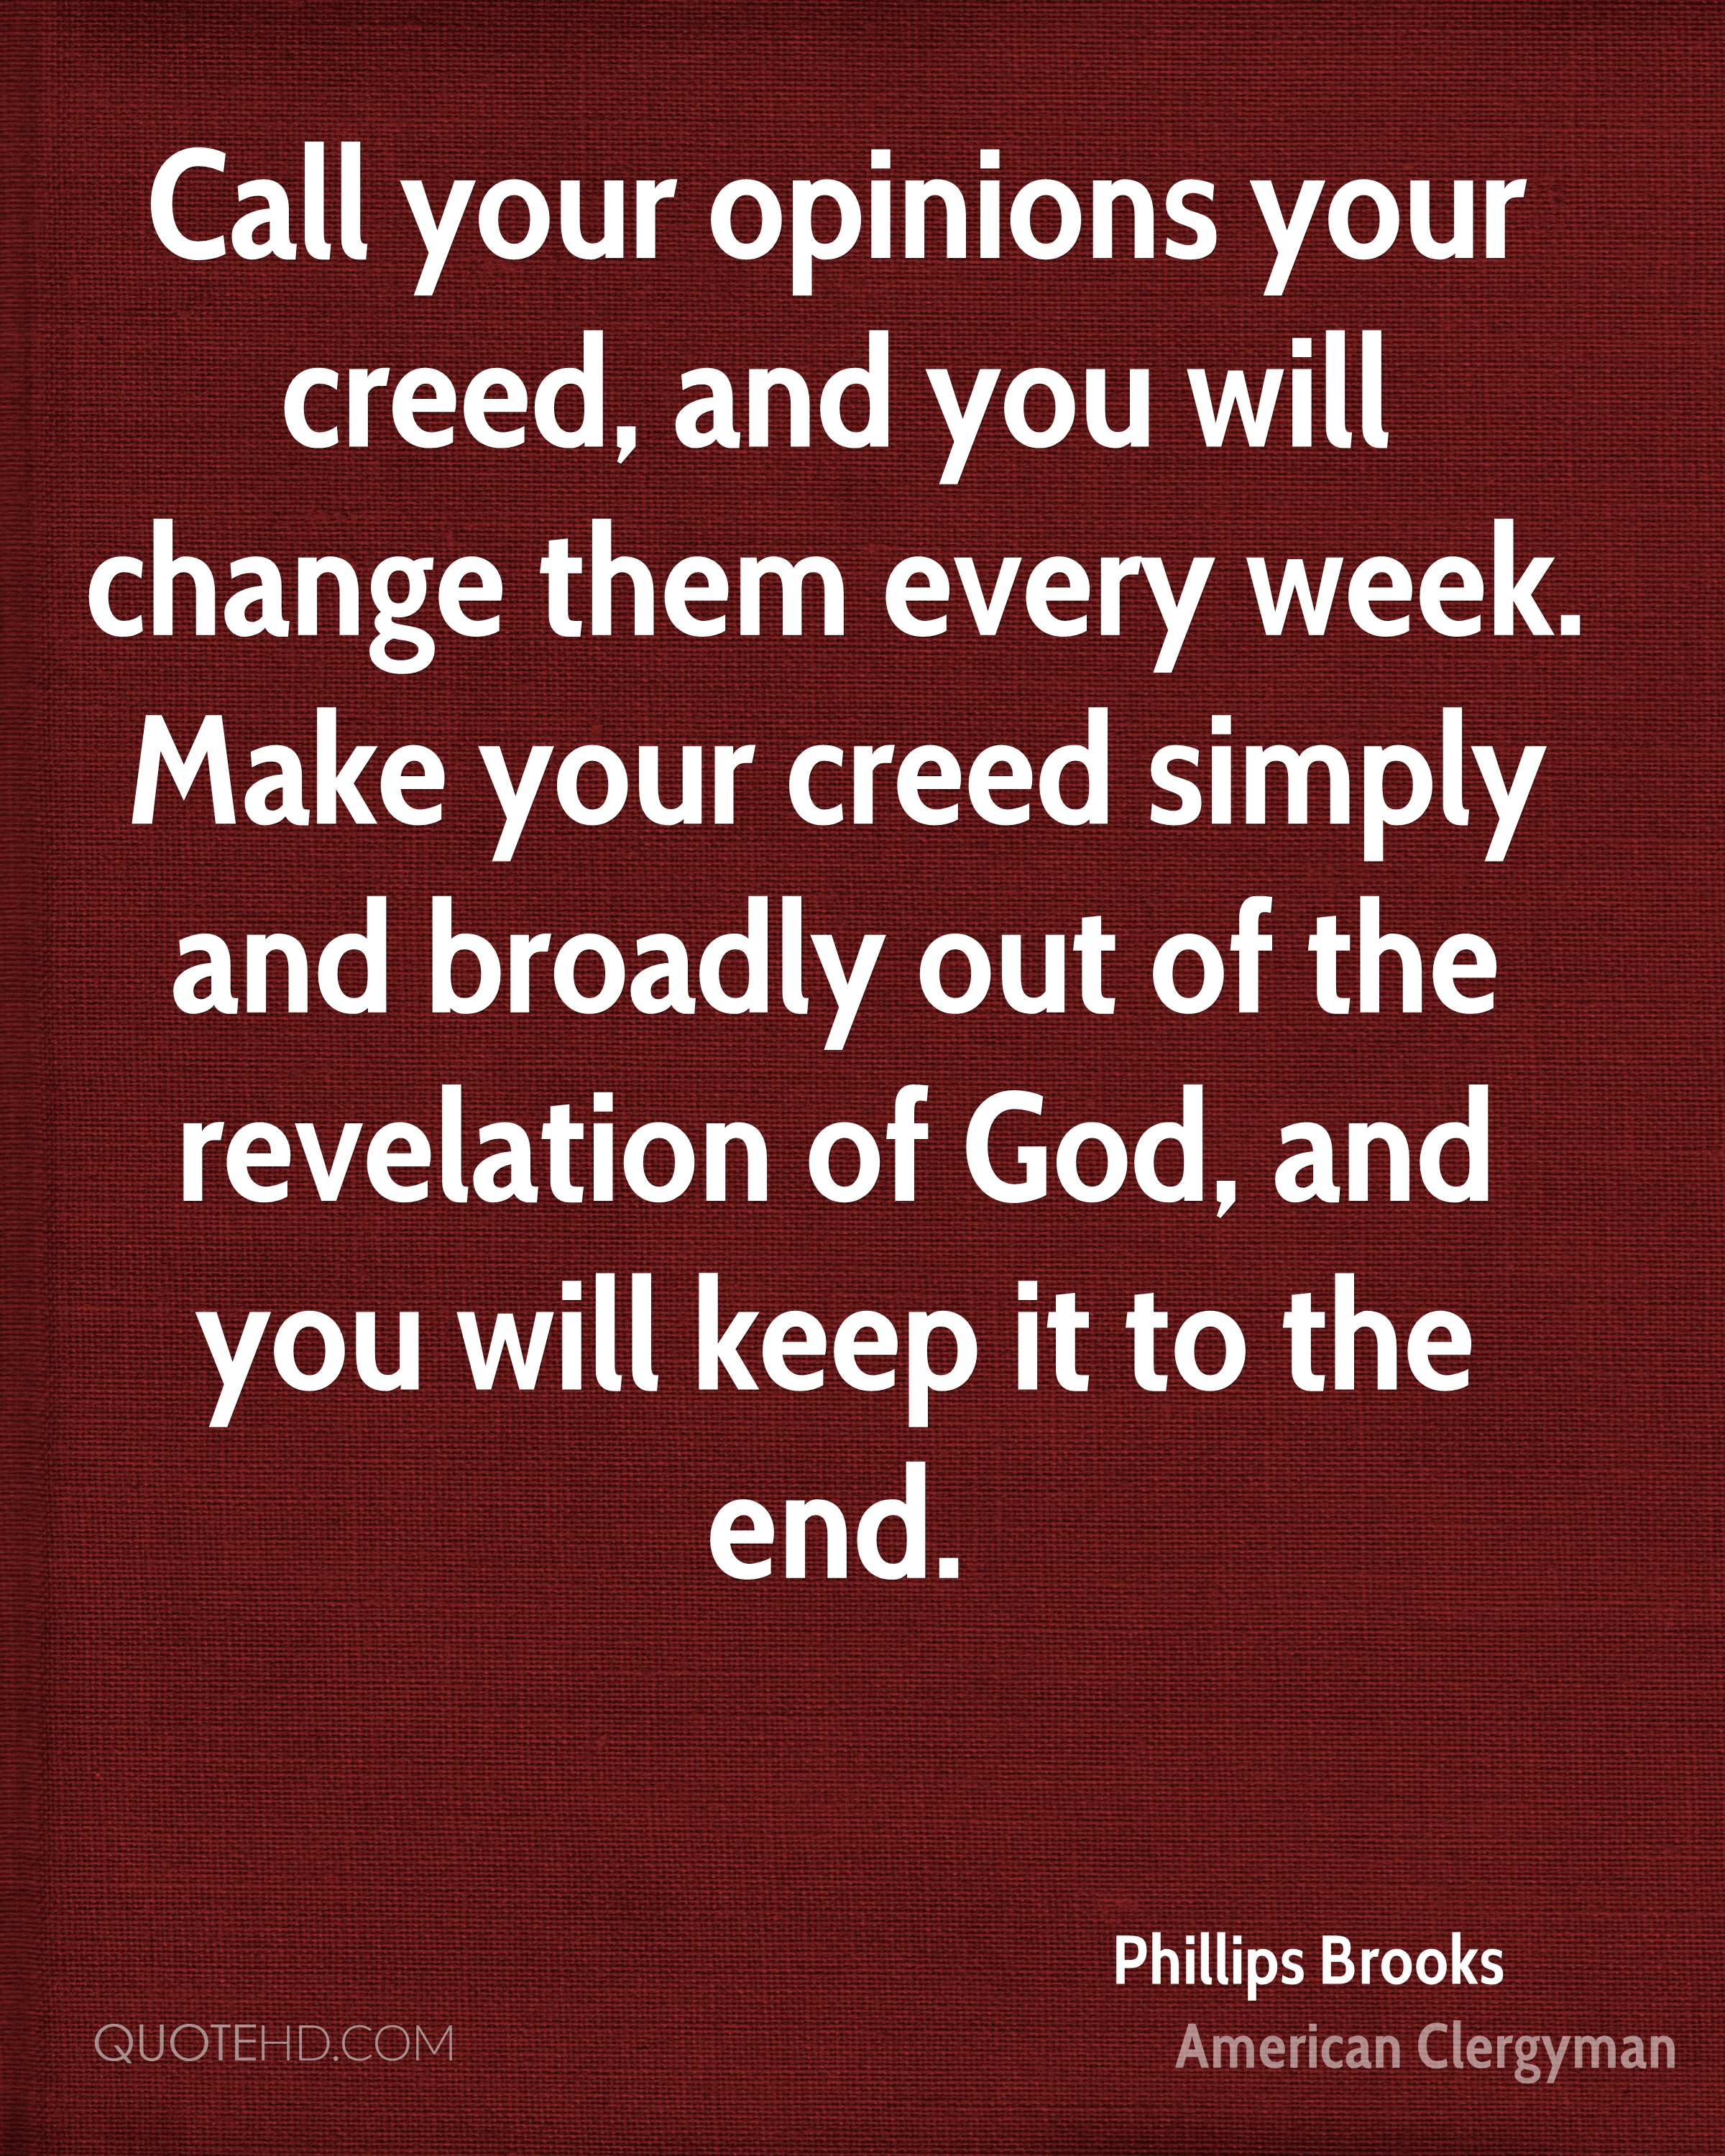 Call your opinions your creed, and you will change them every week. Make your creed simply and broadly out of the revelation of God, and you will keep it to the end.